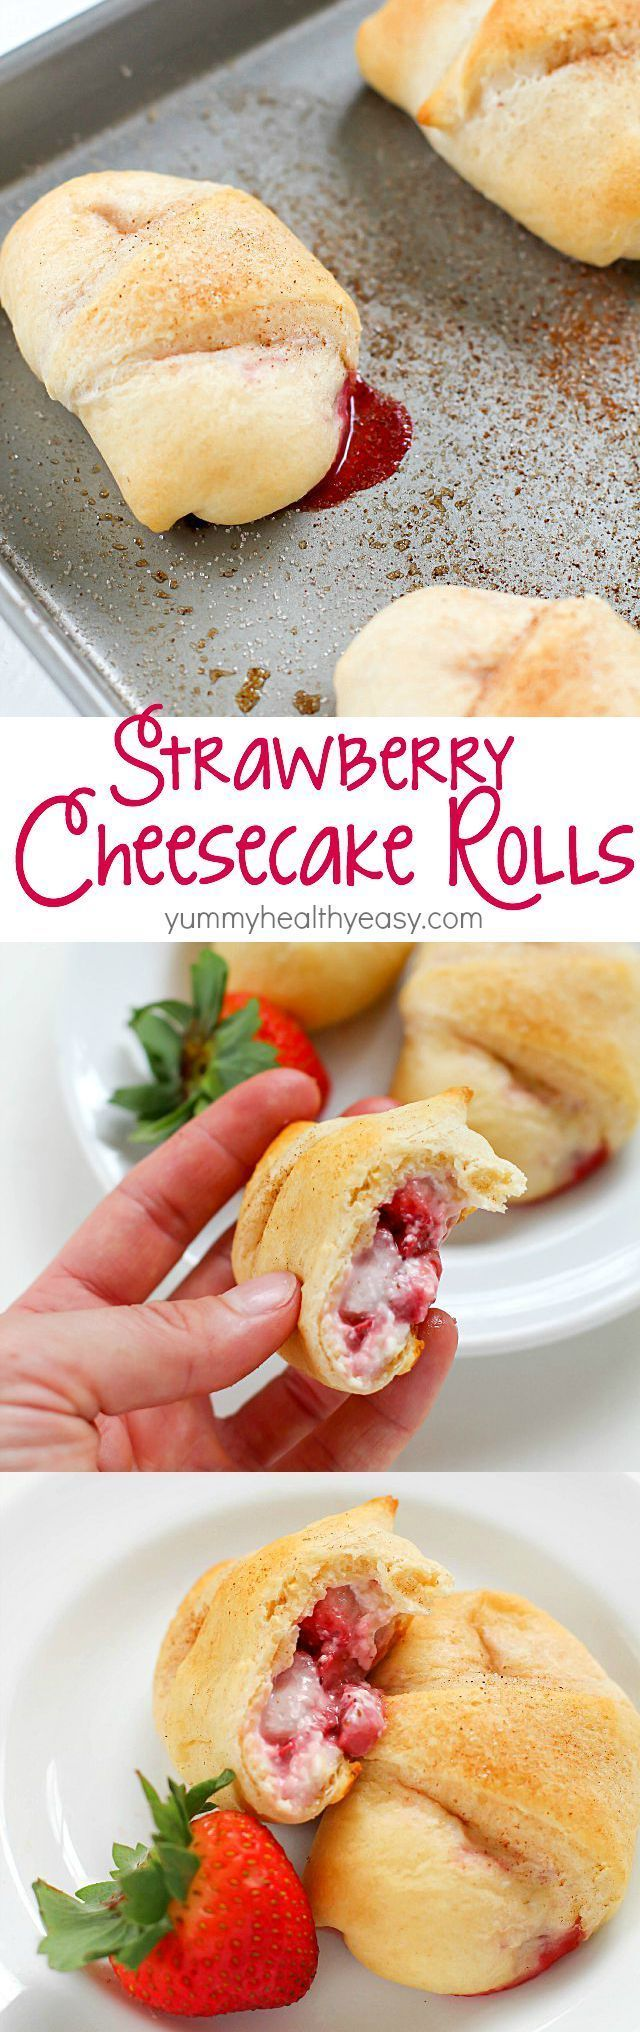 Need a quick and easy dessert? Try these Strawberry Cheesecake Rolls! Crescent rolls spread with a cream cheese mixture and a scoop of strawberries rolled together and baked. Delicious!